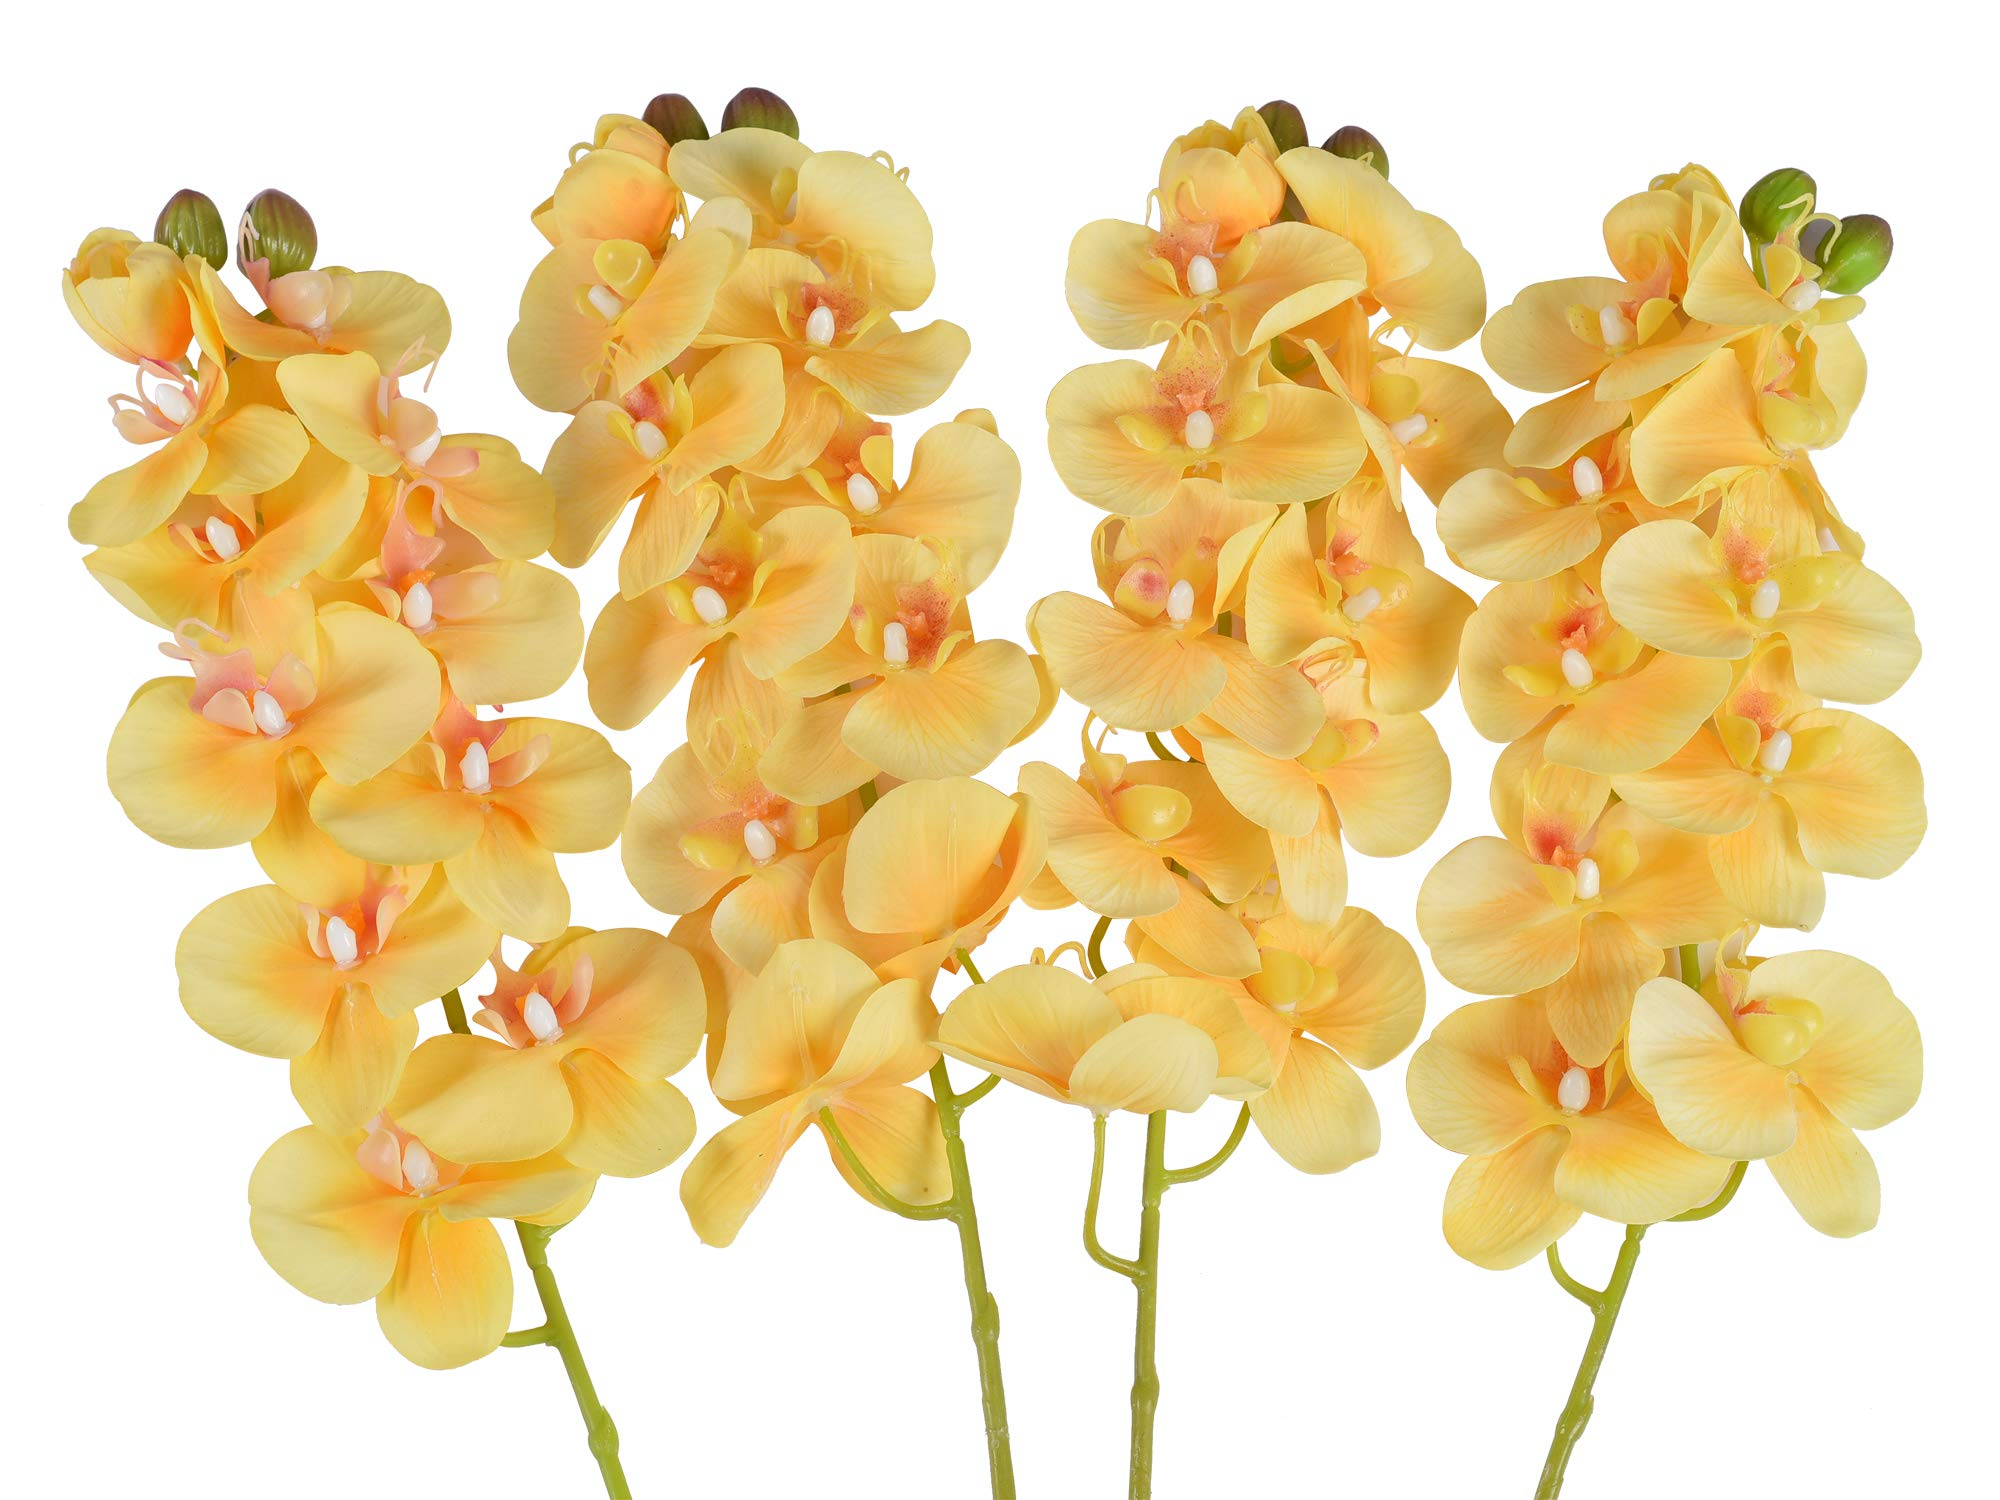 Ivalue 4 Pack Fake Orchid Stems Real Touch Butterfly Phalaenopsis Flowers 11 Heads Artificial Orchid Flowers Yellow for Home Decoration (4, Yellow)